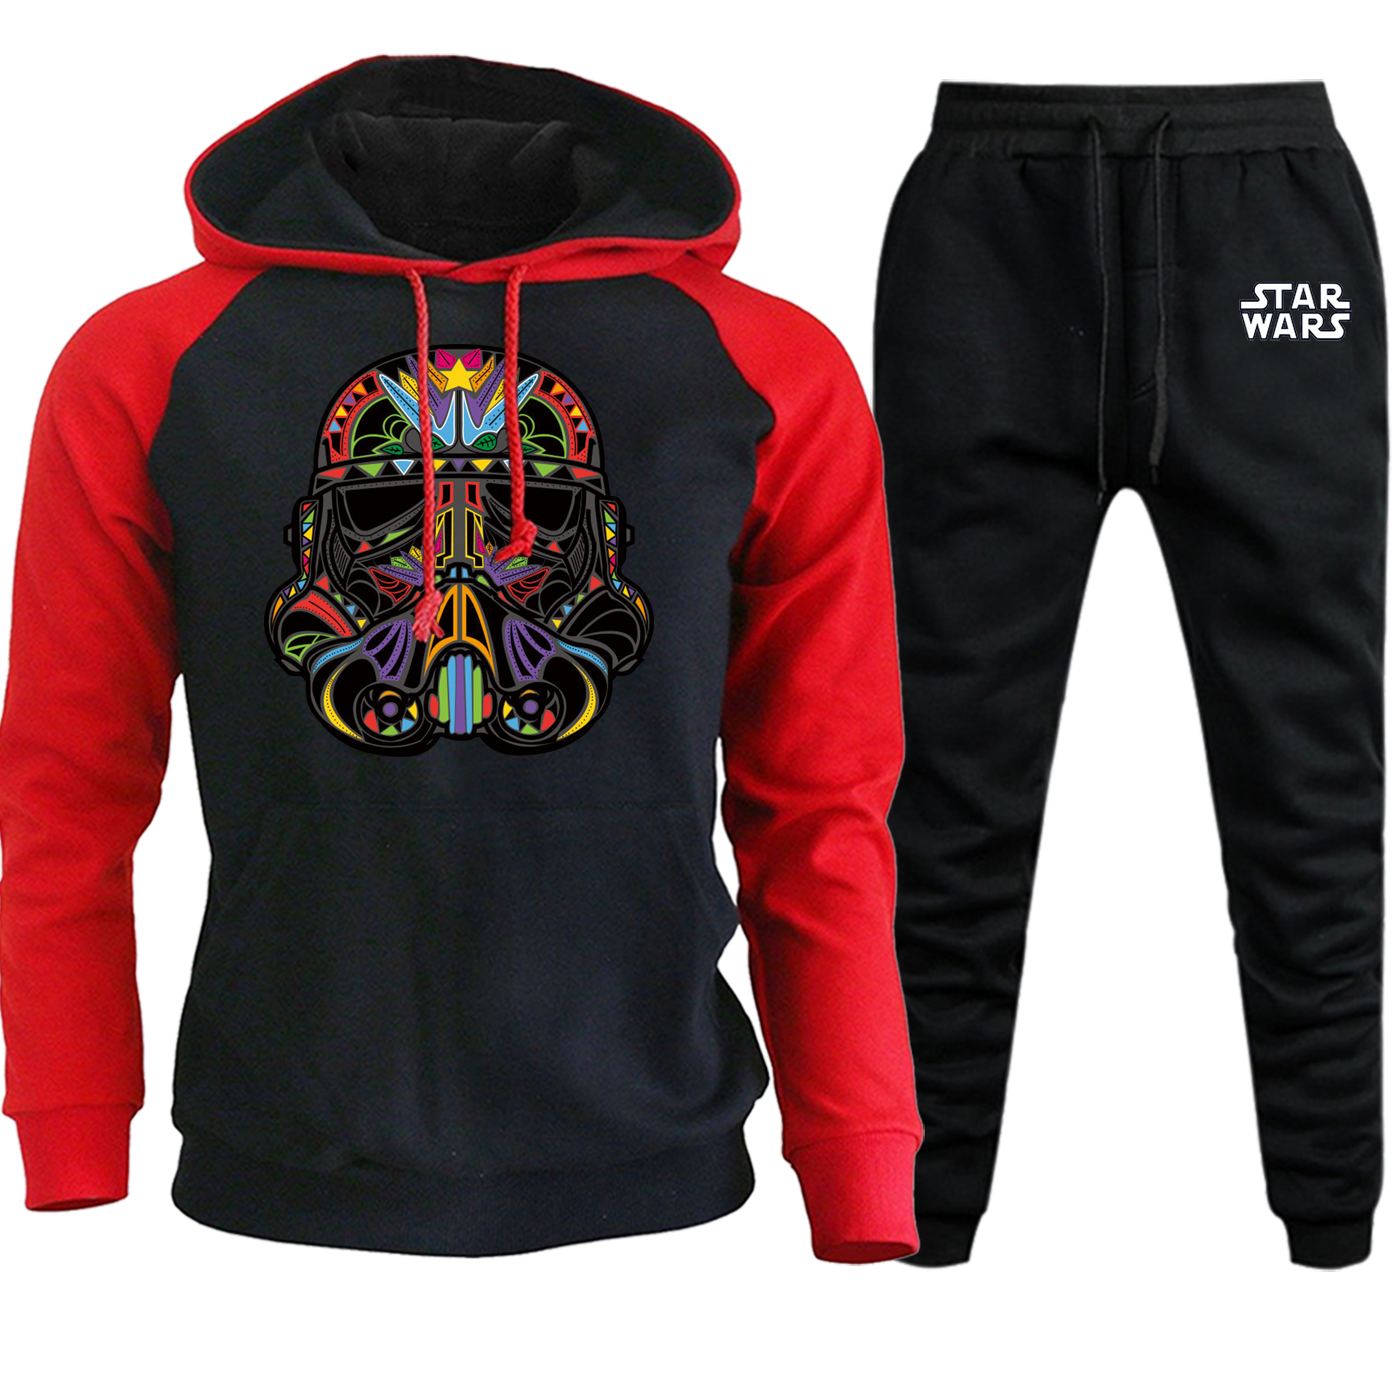 Star Wars Funny Stormtrooper Printed Streetwear Hoodies Raglan Mens Autumn Winter Hot Sale Hip Hop Suit Hooded+Pants 2 Piece Set